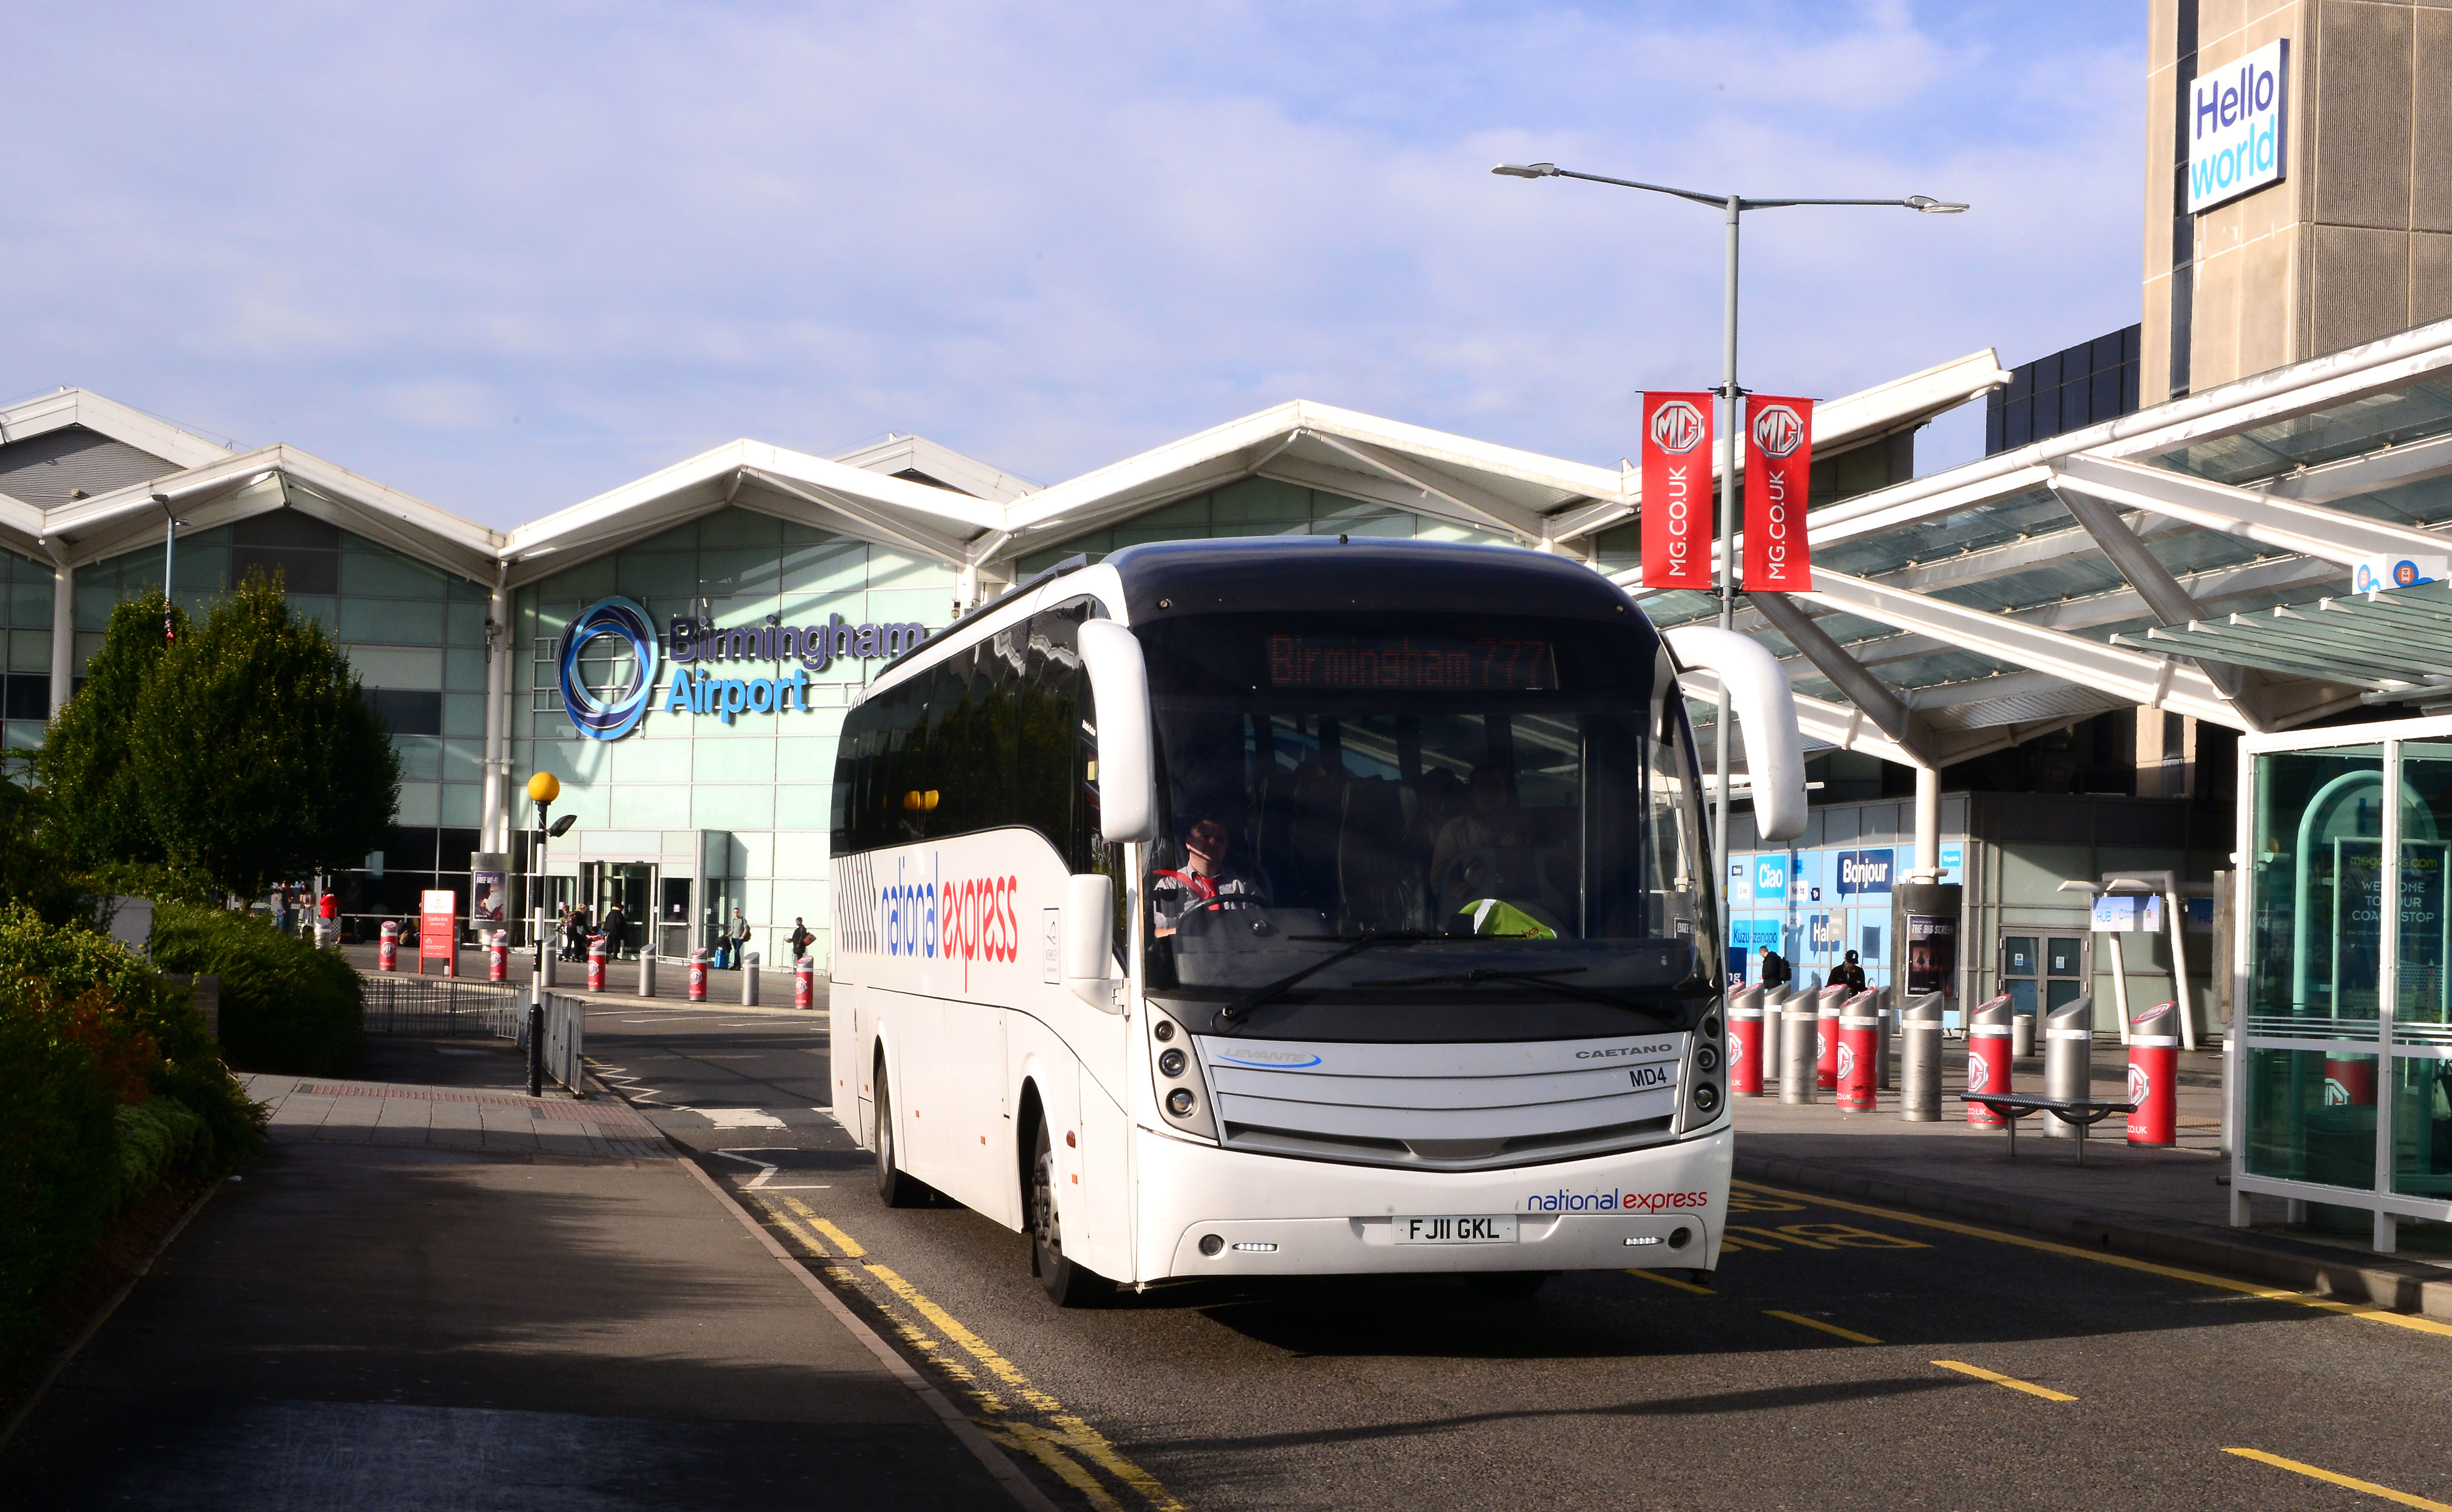 8e4f7f56923 National Express. The UK's largest scheduled coach operator offers ...